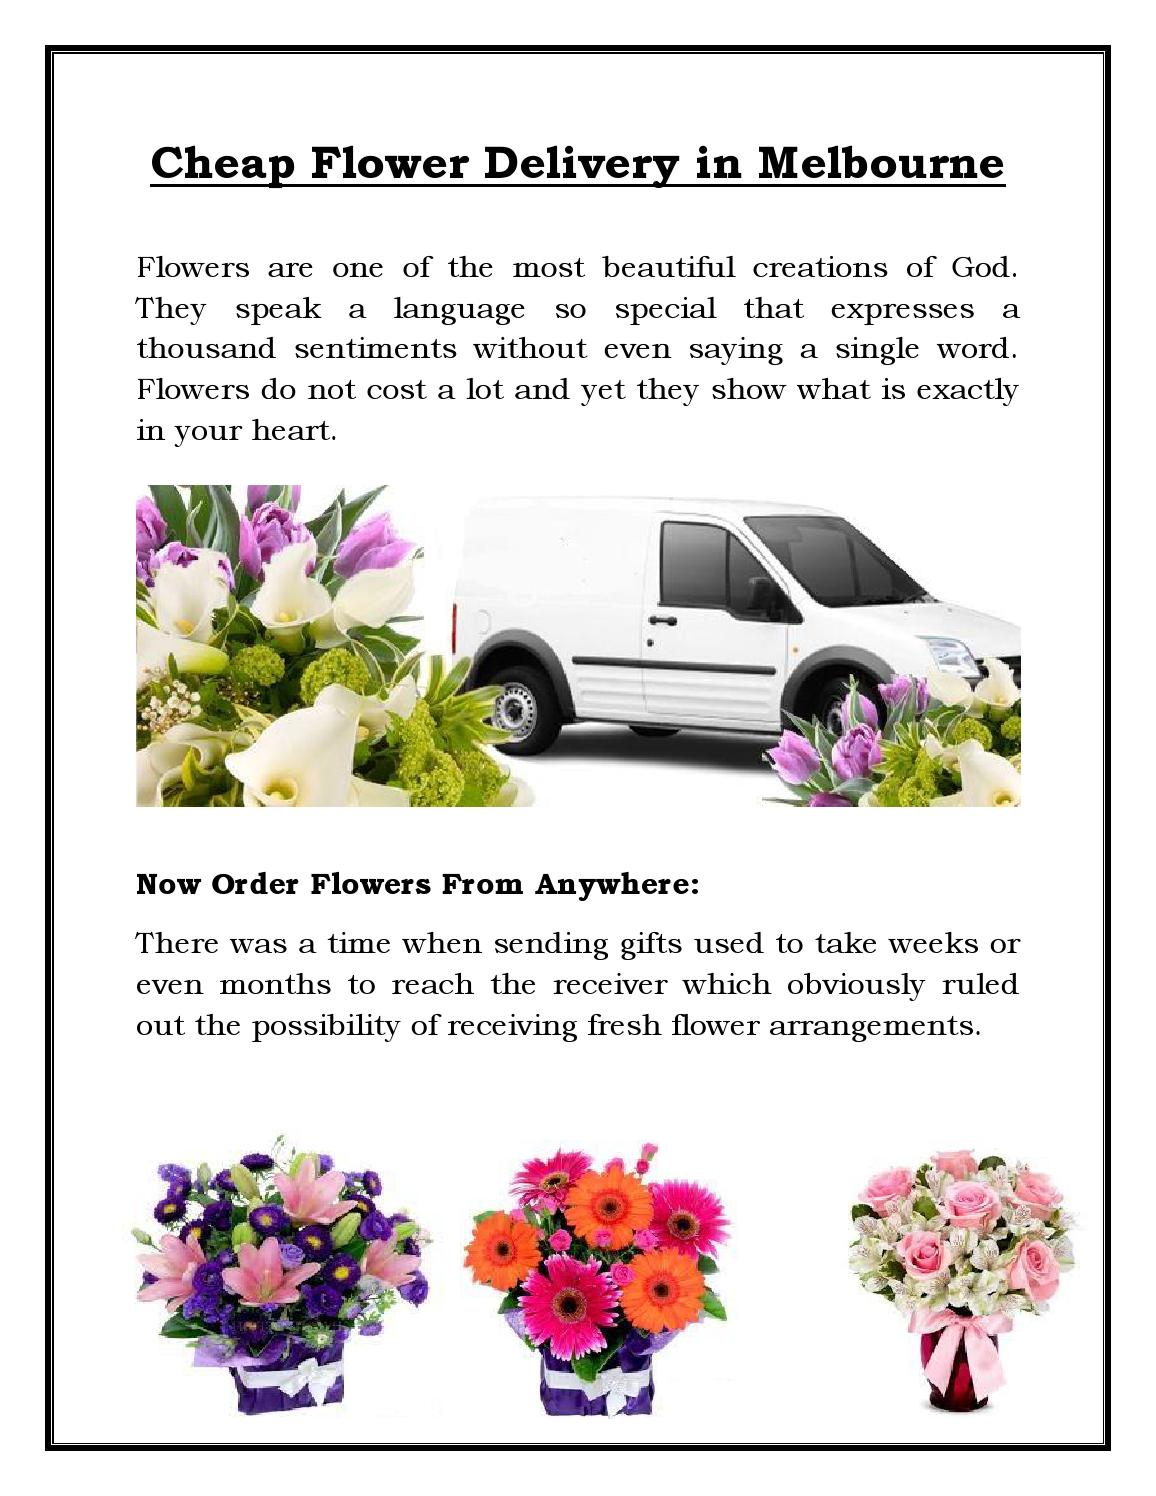 Cheap flower delivery melbourne by thanks a bunch florist issuu izmirmasajfo